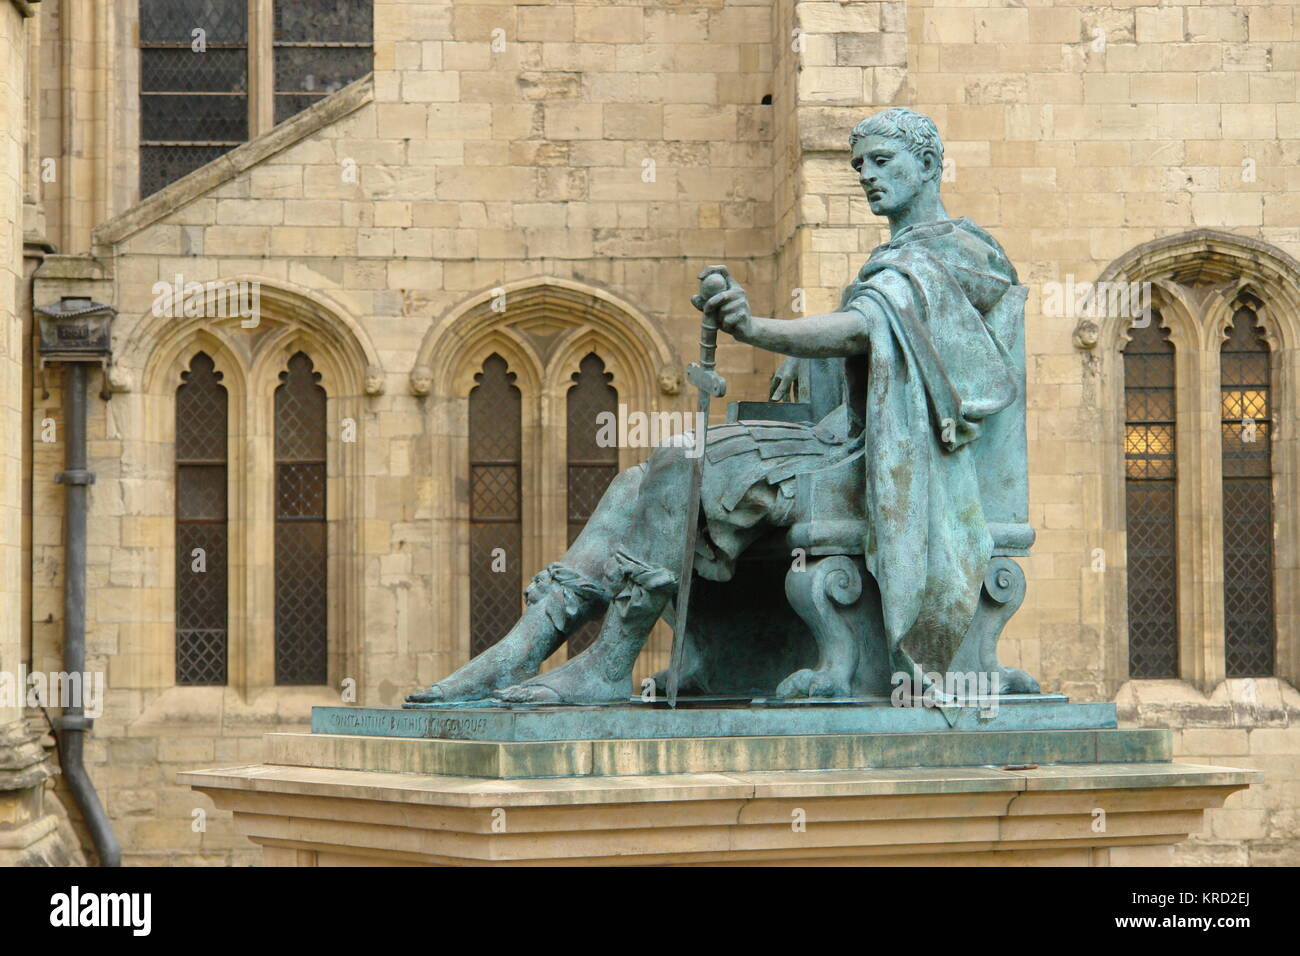 Statue of the Roman Emperor Constantine (272-337), outside York Minster.  In AD306 Constantine the Great was hailed - Stock Image